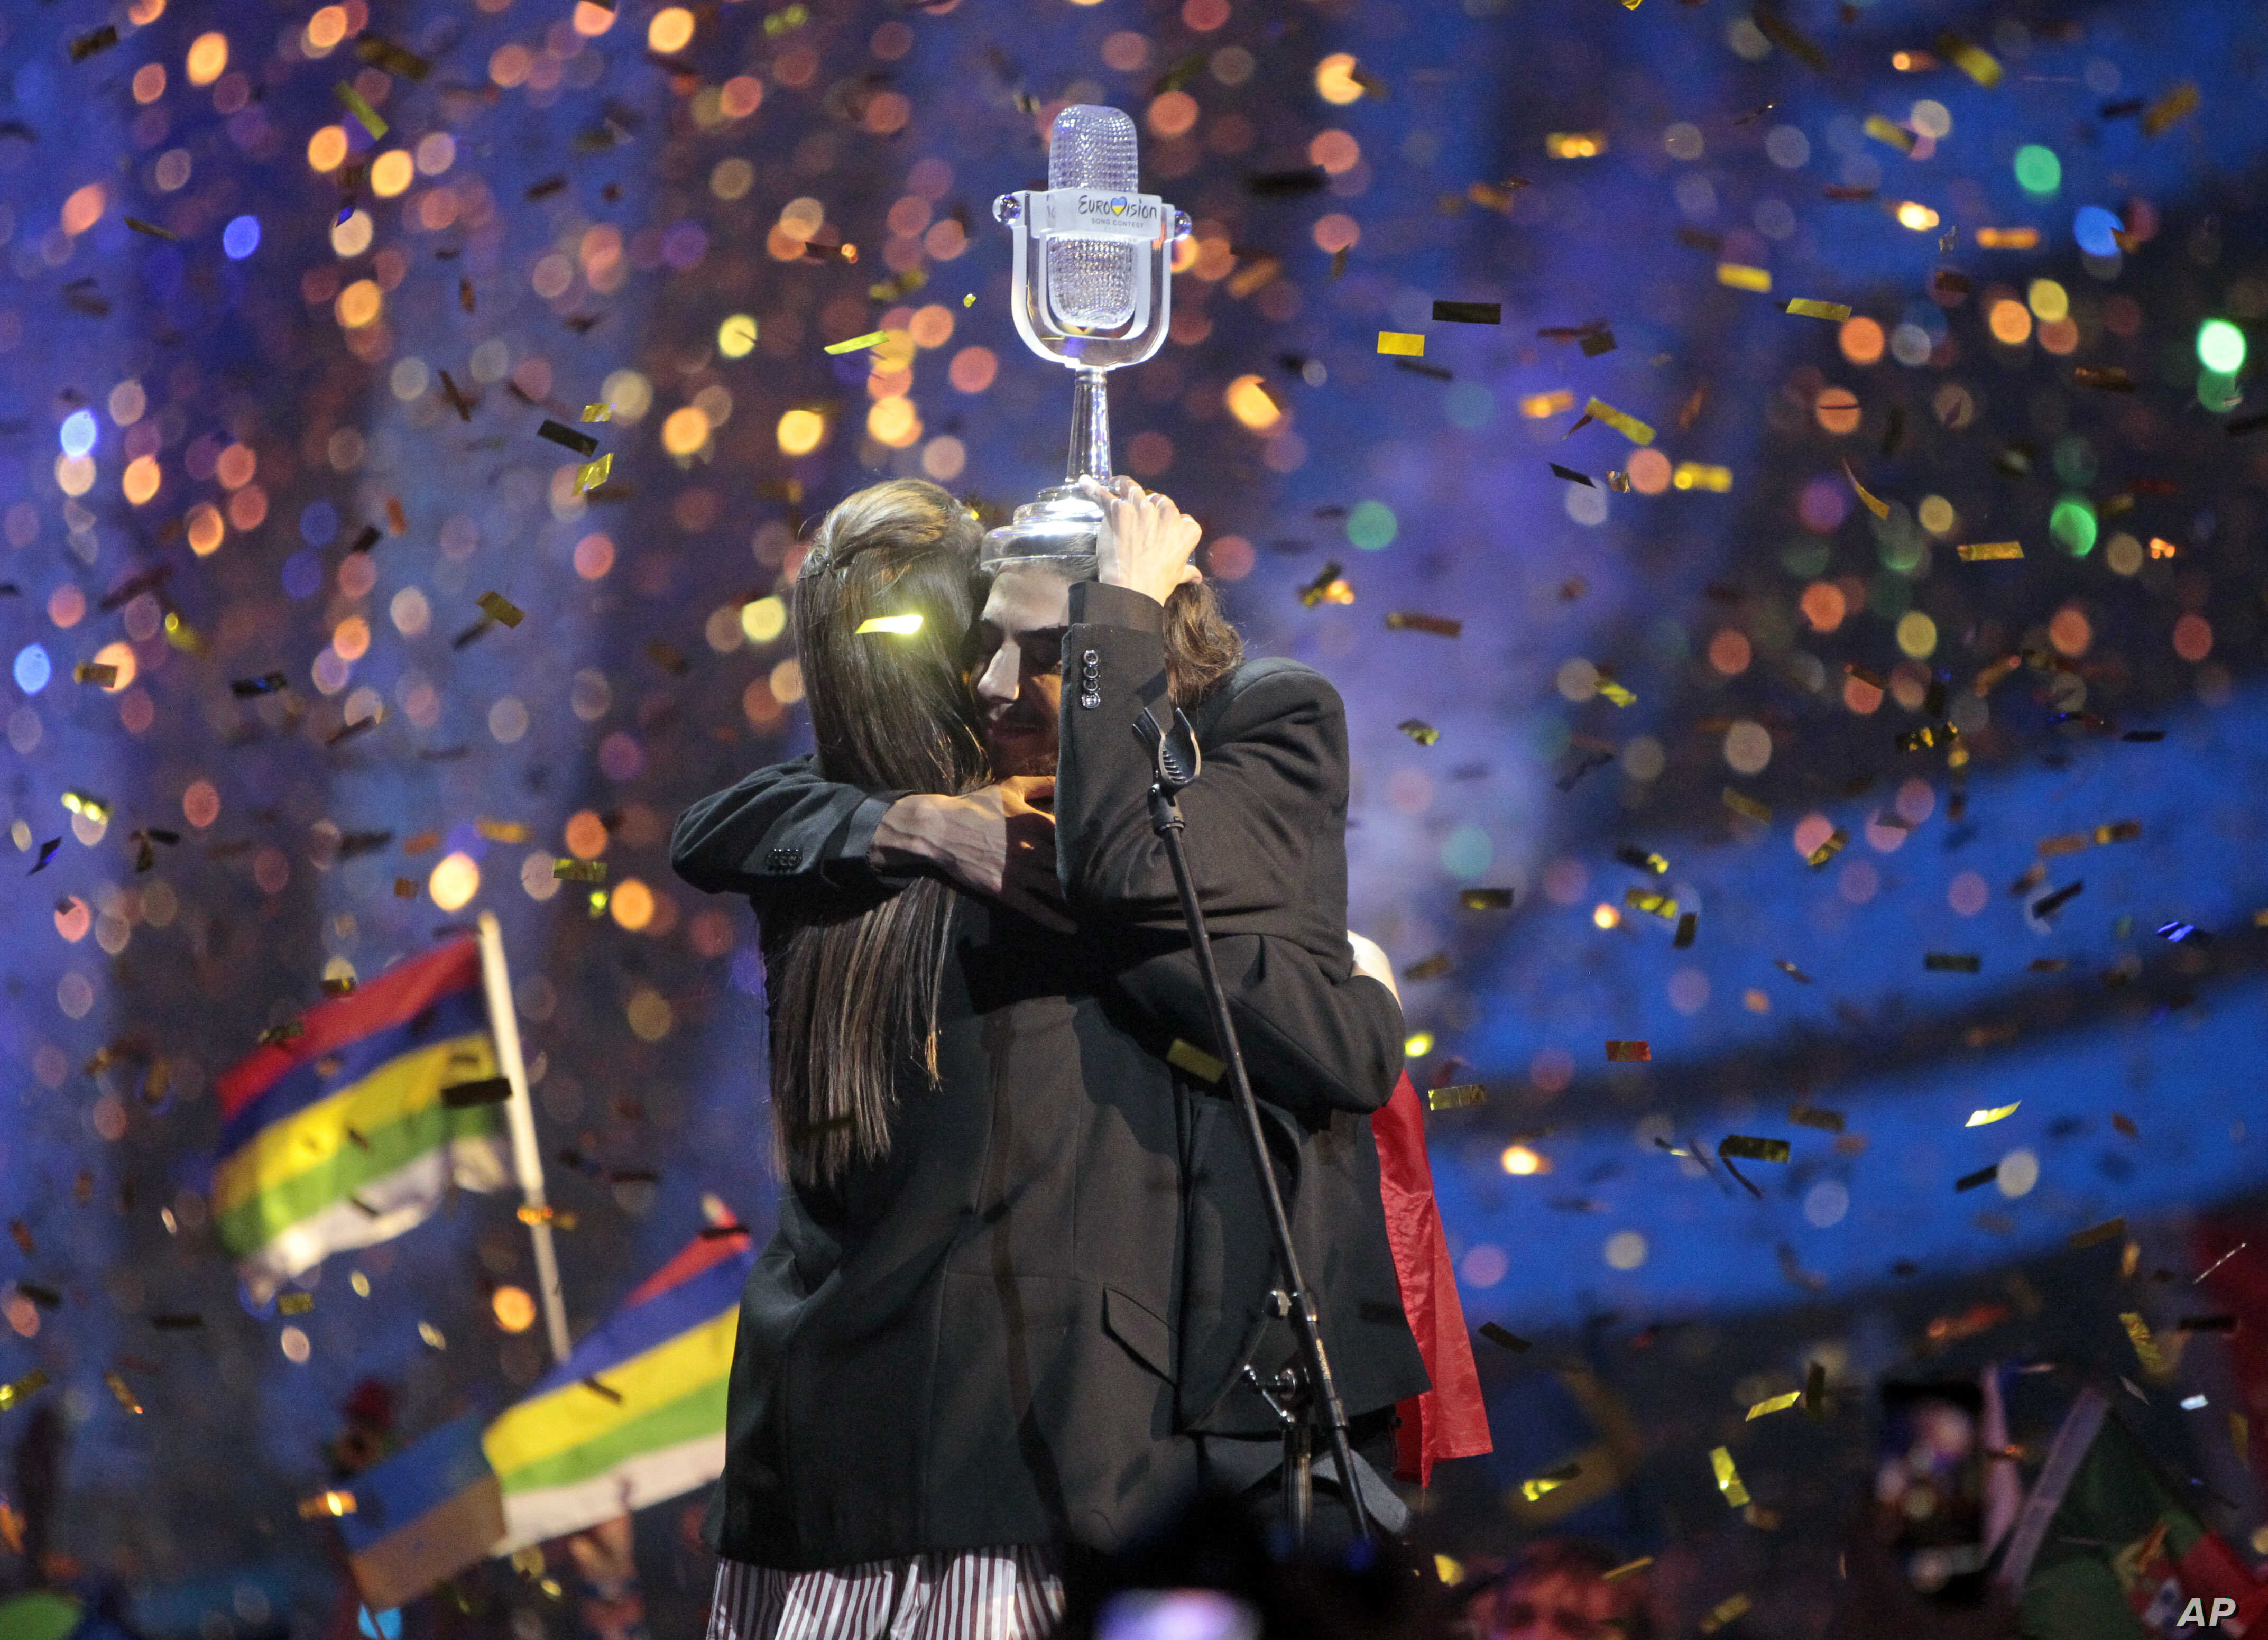 """Salvador Sobral from Portugal, right, embraces his sister Luisa after performing the song """"Amar pelos dois"""" following his win in the Final of the Eurovision Song Contest, in Kyiv, Ukraine, May 13, 2017."""